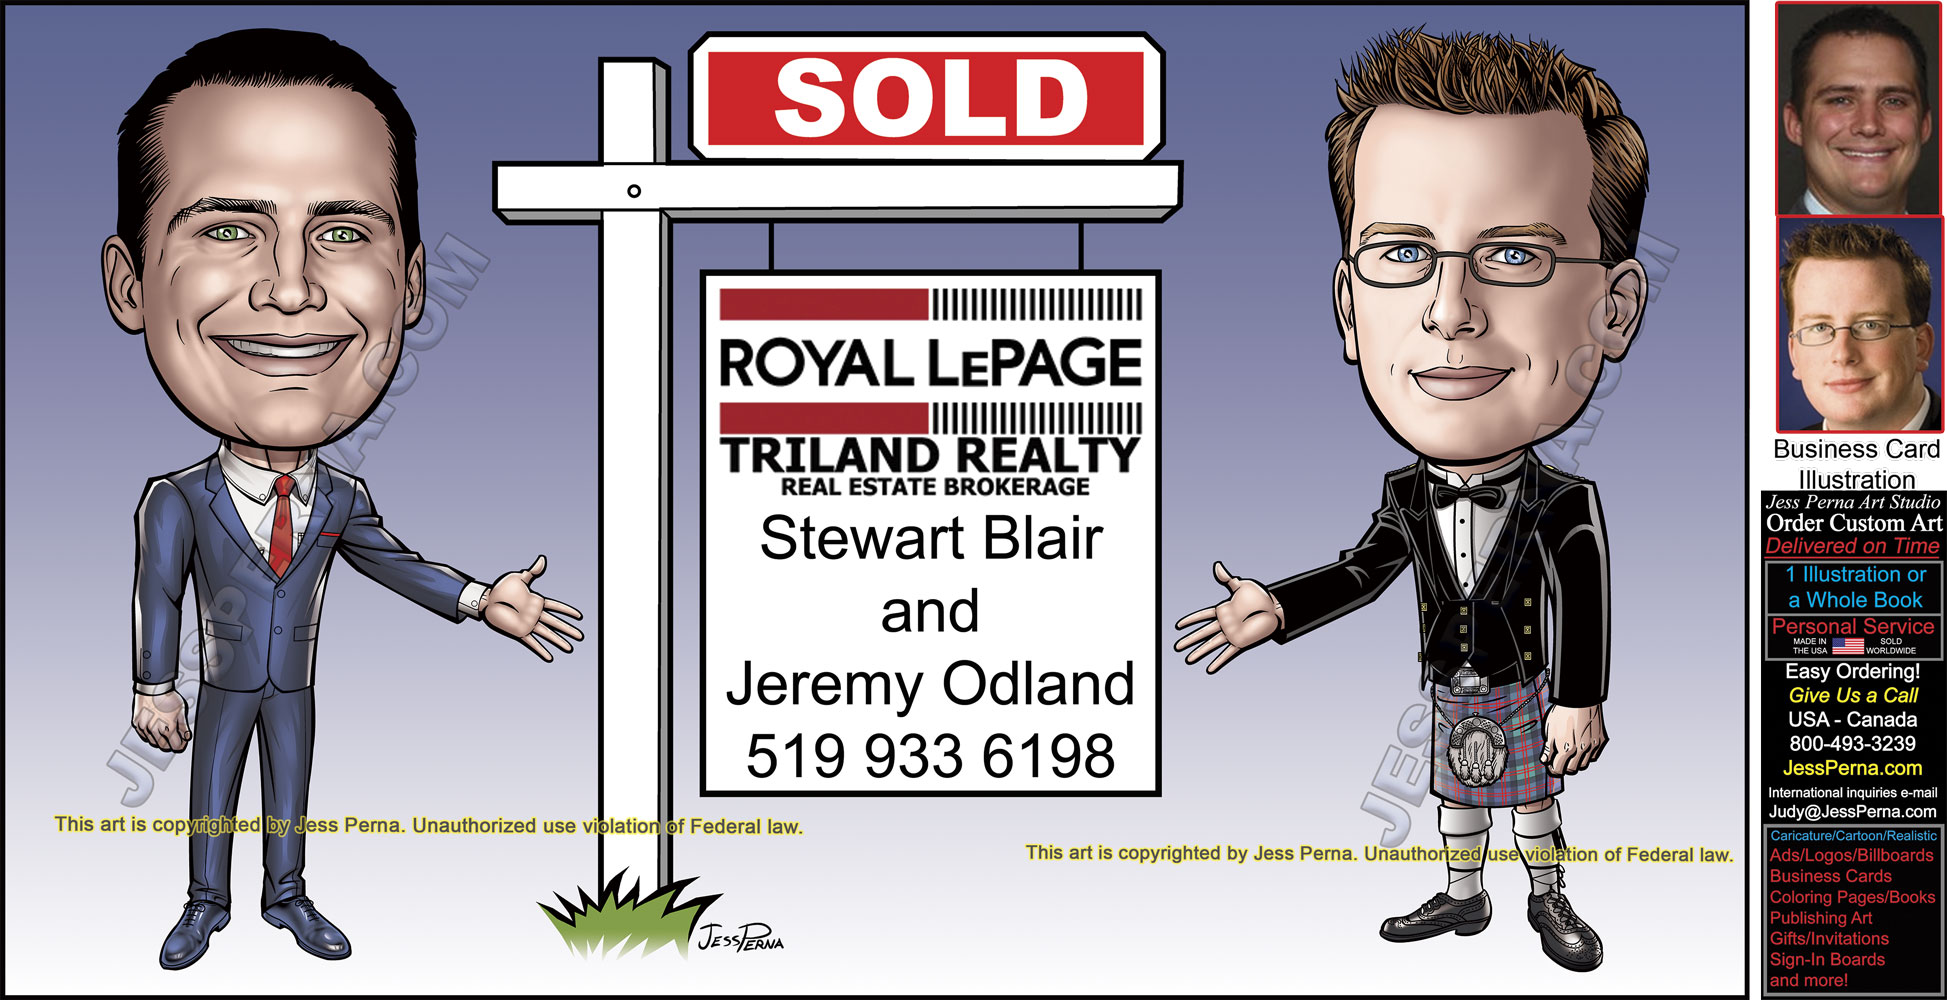 Order real estate agent partner cartoon ads 7 remax partners sold sign ad reheart Image collections